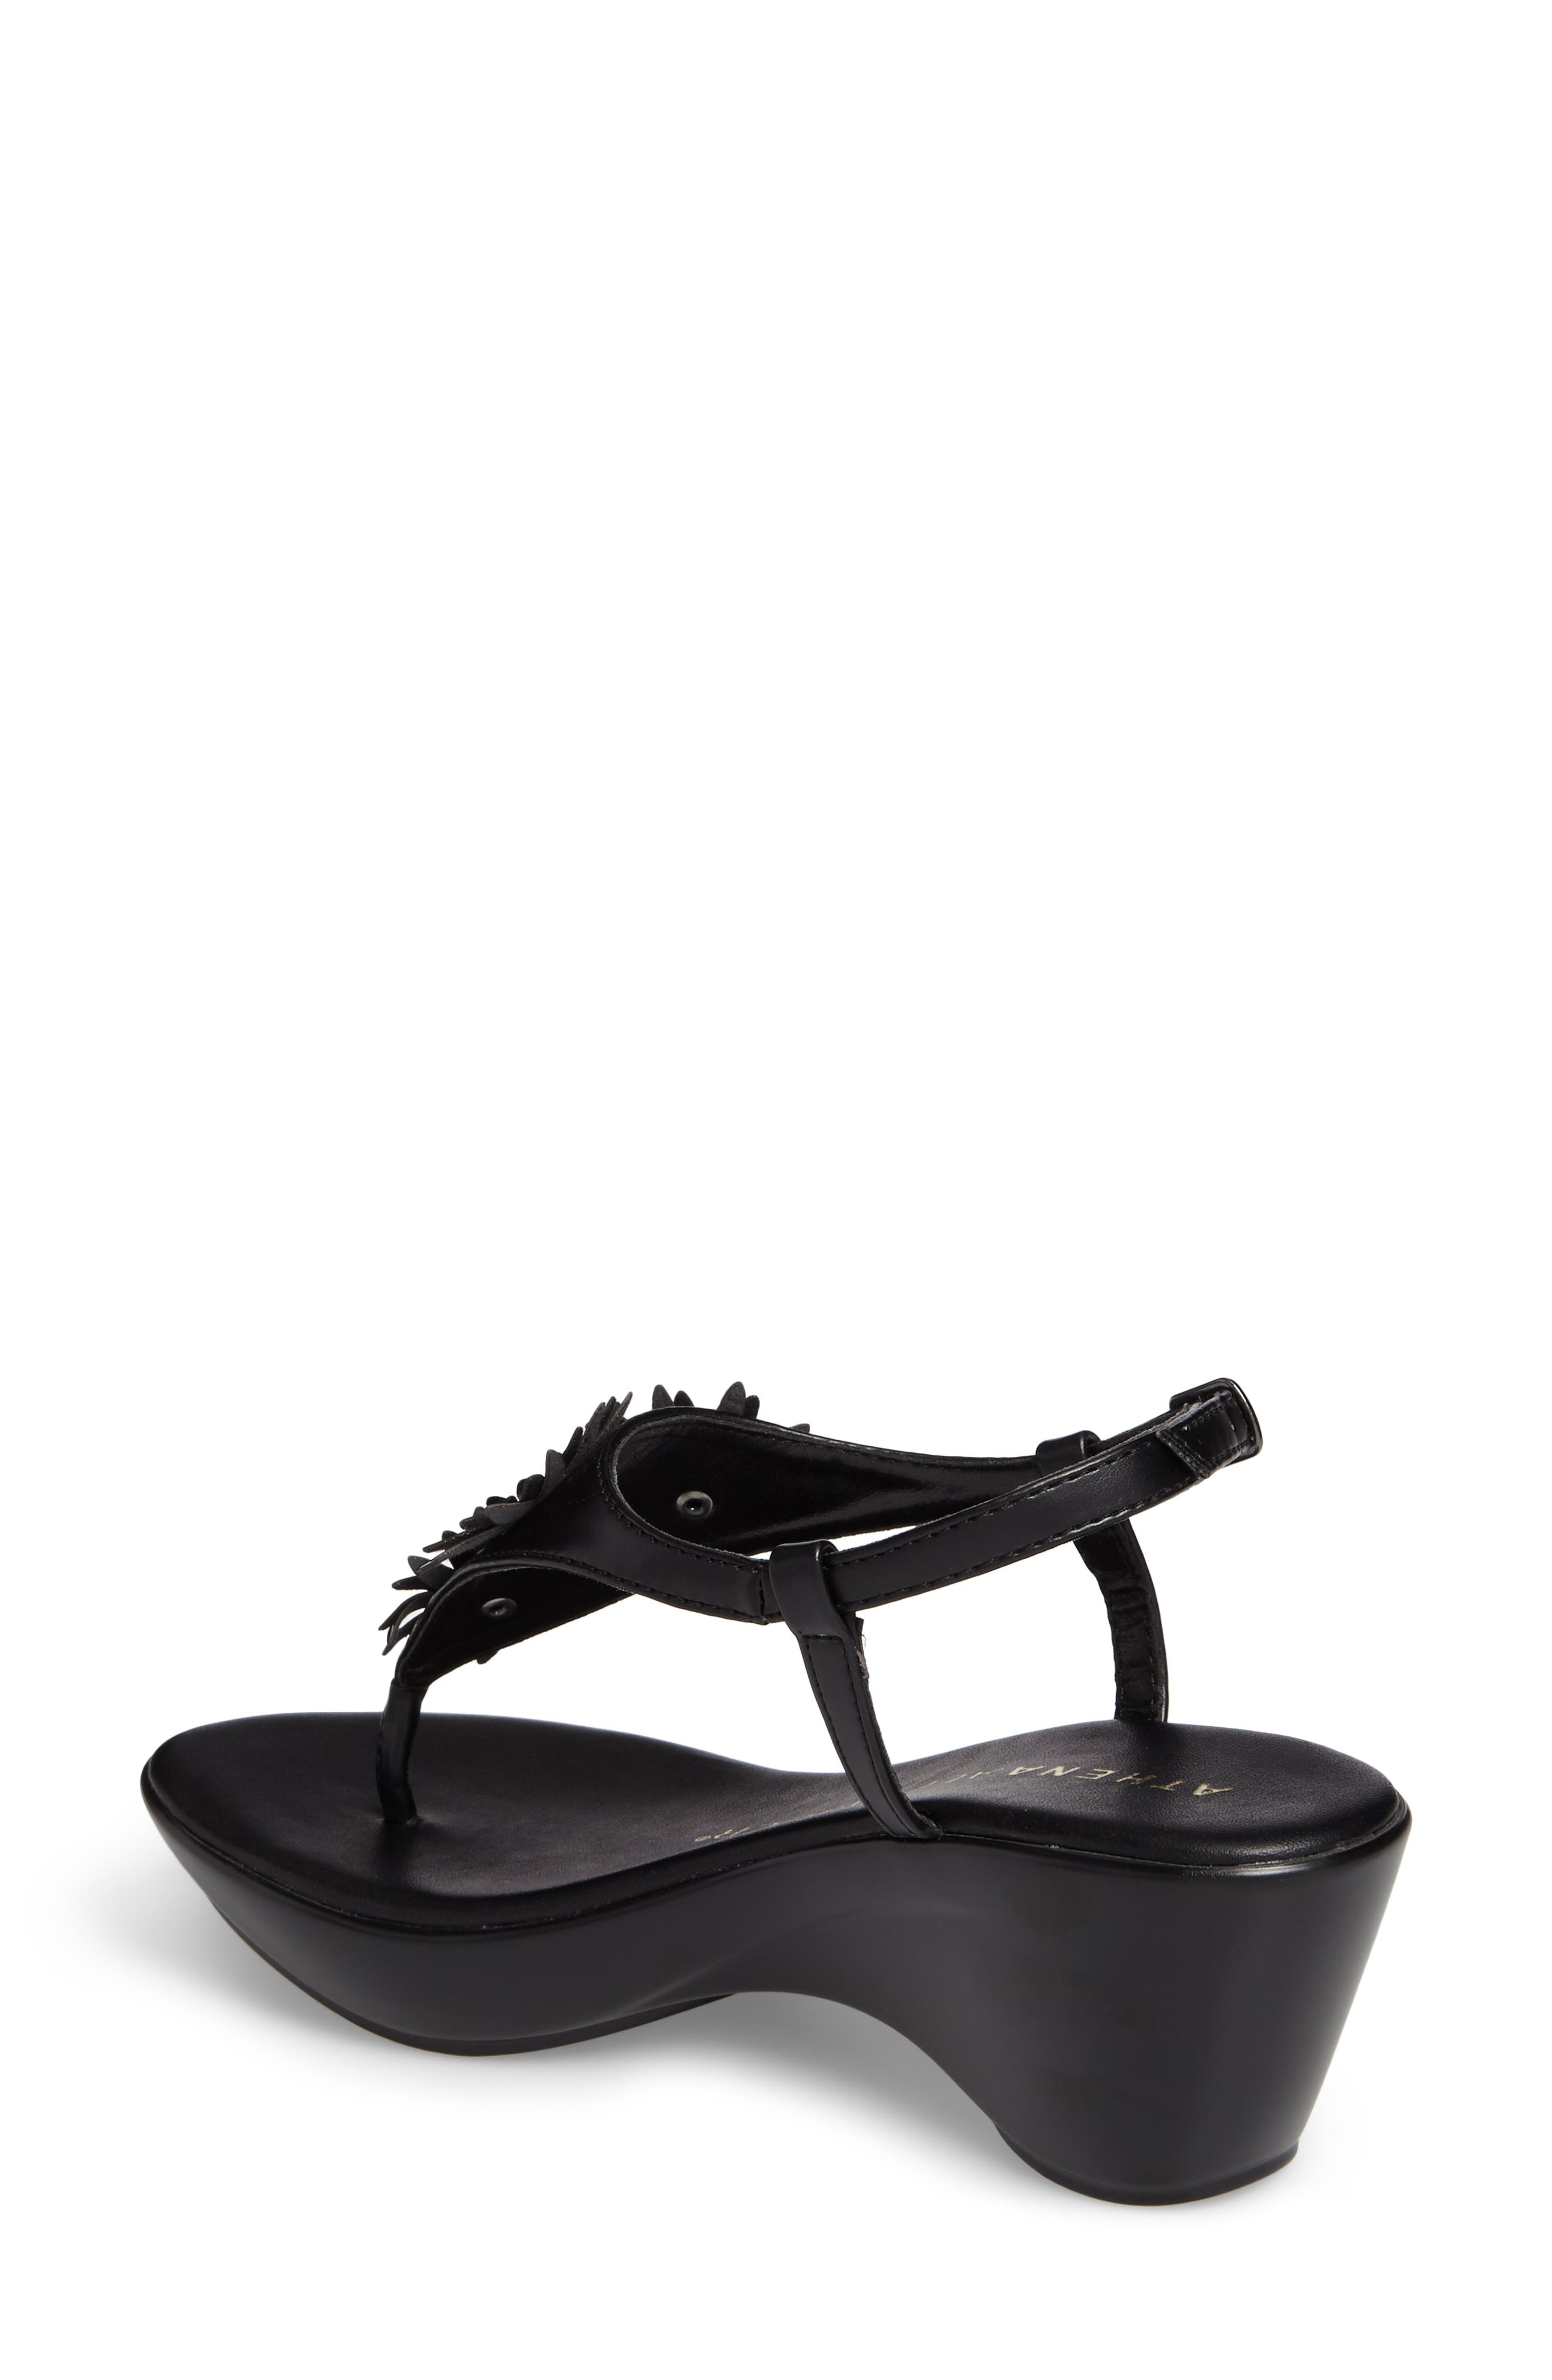 Alessandria Sandal,                             Alternate thumbnail 2, color,                             001